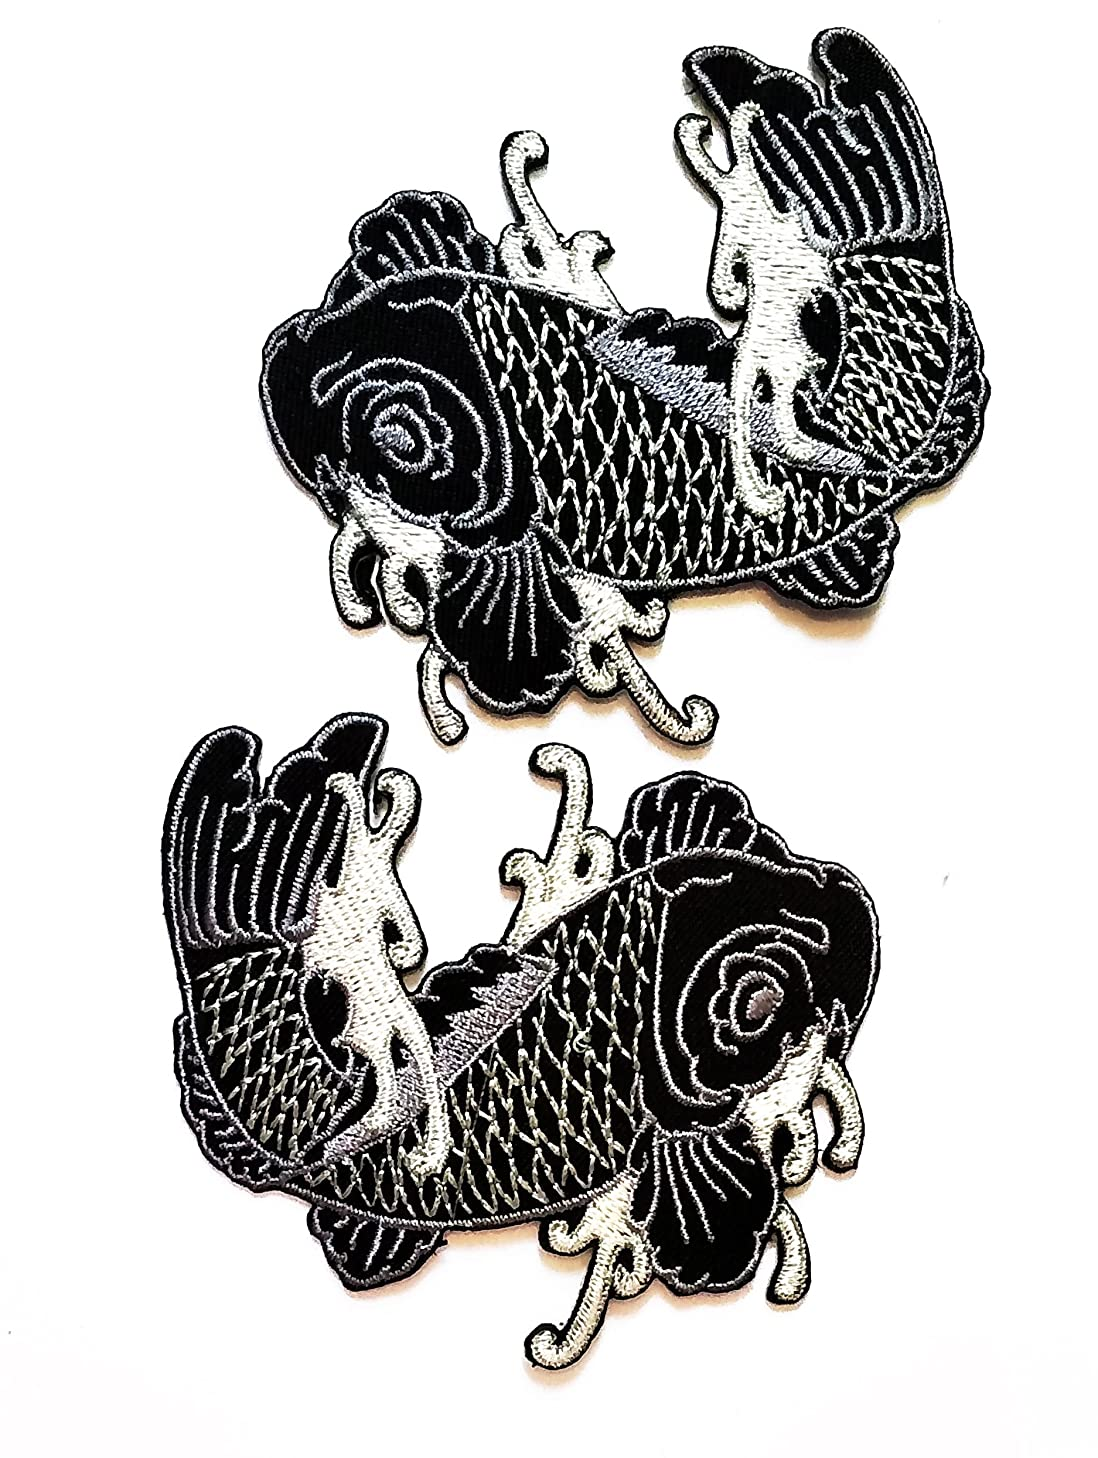 Nipitshop Patches Set Black Fish Patch Japanese koi carp Fish Tattoo Japan Love Embroidered Applique Iron-on Patch for Clothes Backpacks T-Shirt Jeans Skirt Vests Scarf Hat Bag